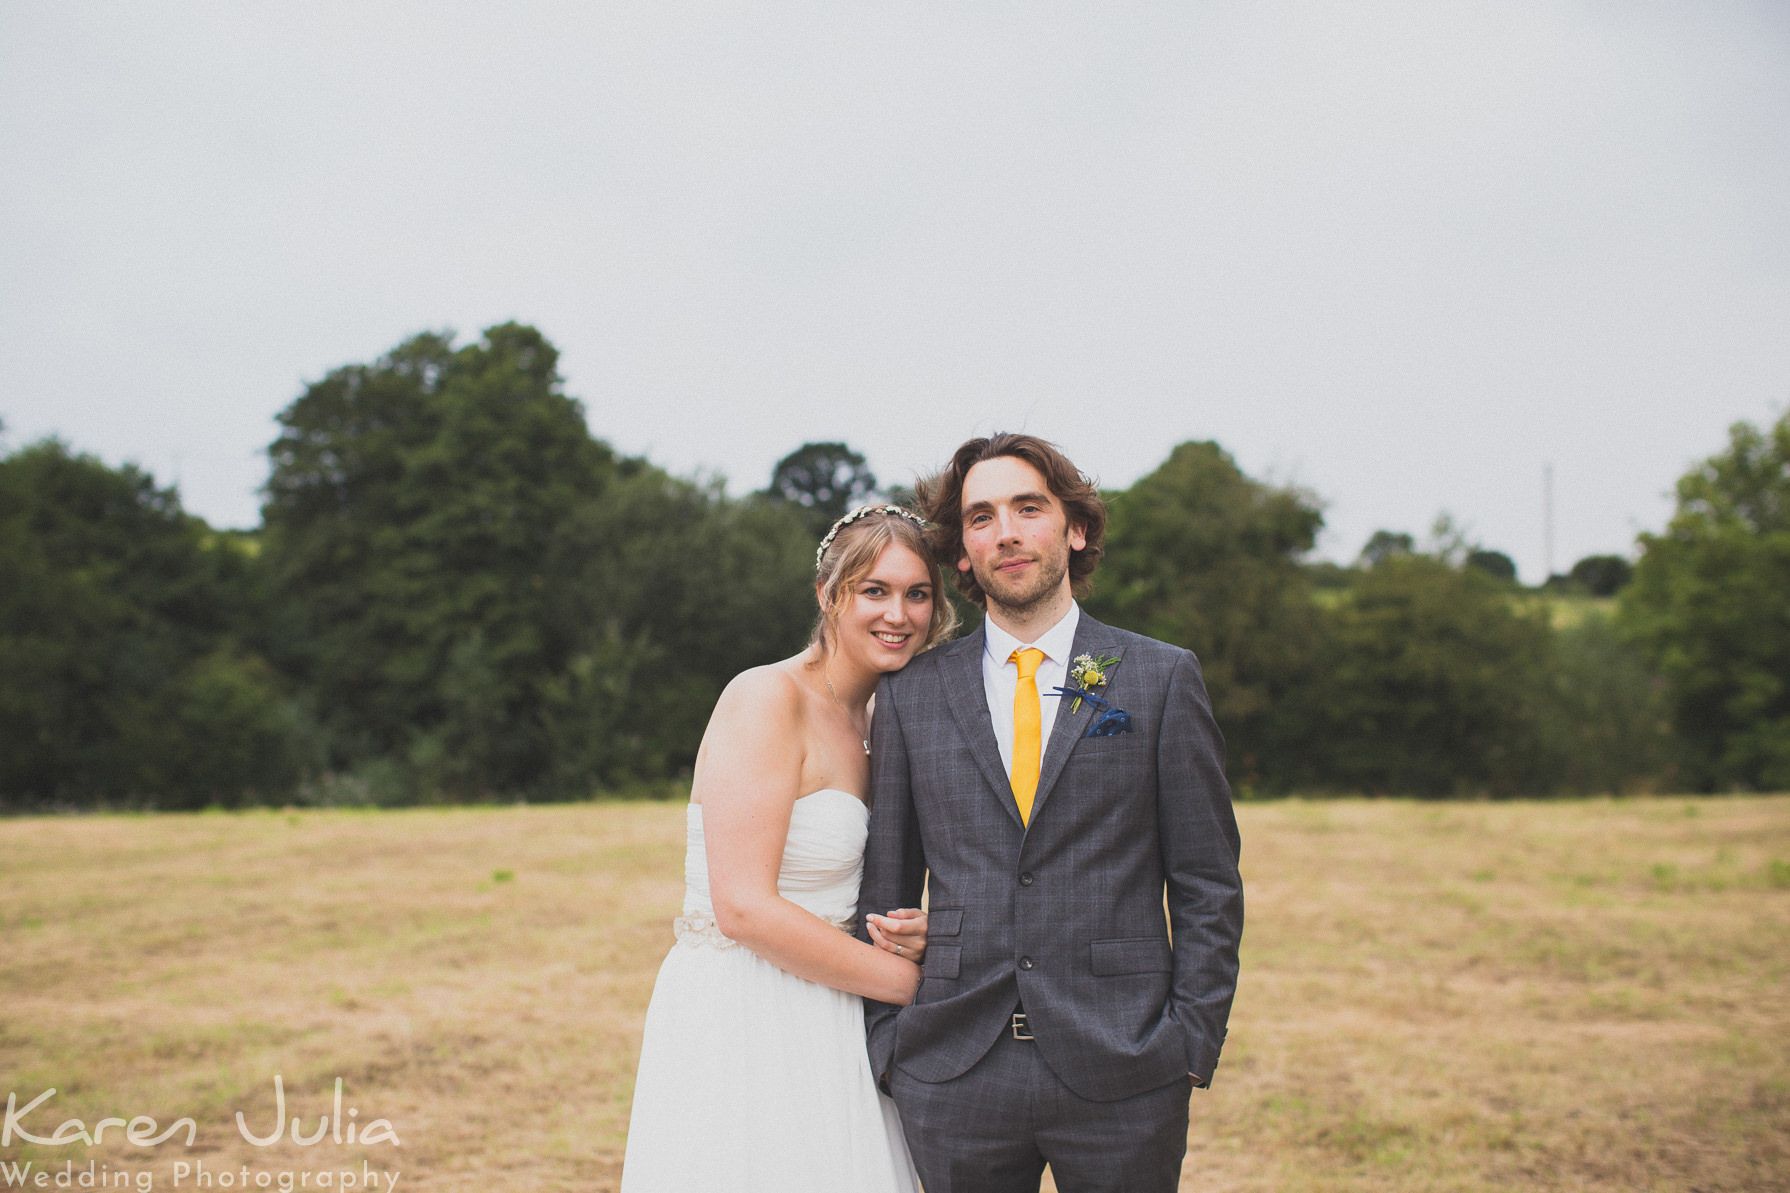 Rustic Village Hall Wedding Photography featuring bride and groom in field